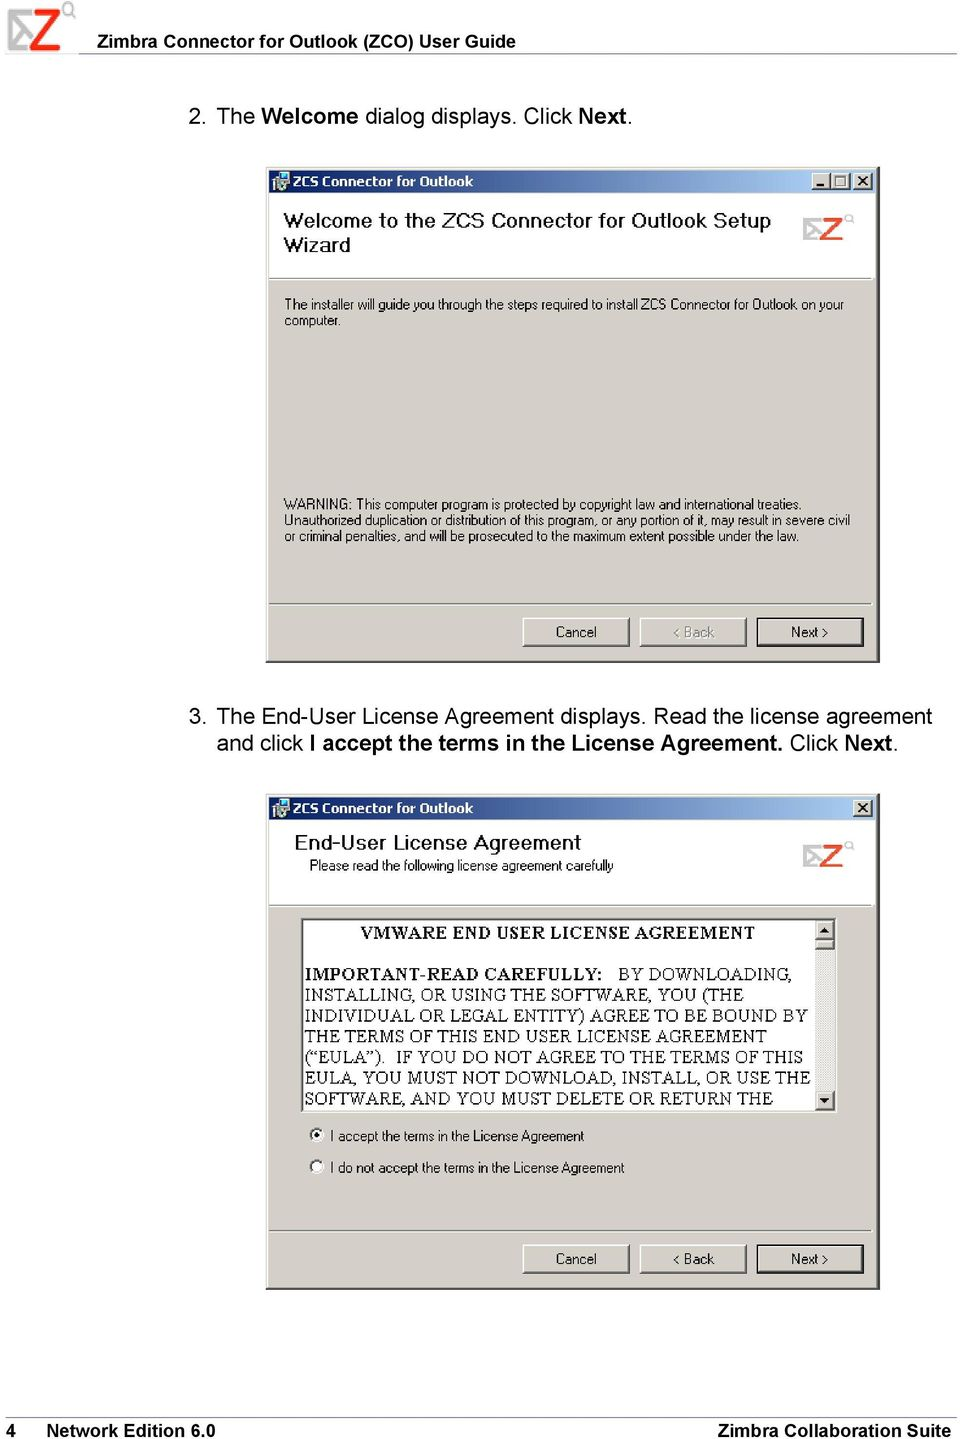 The End-User License Agreement displays.